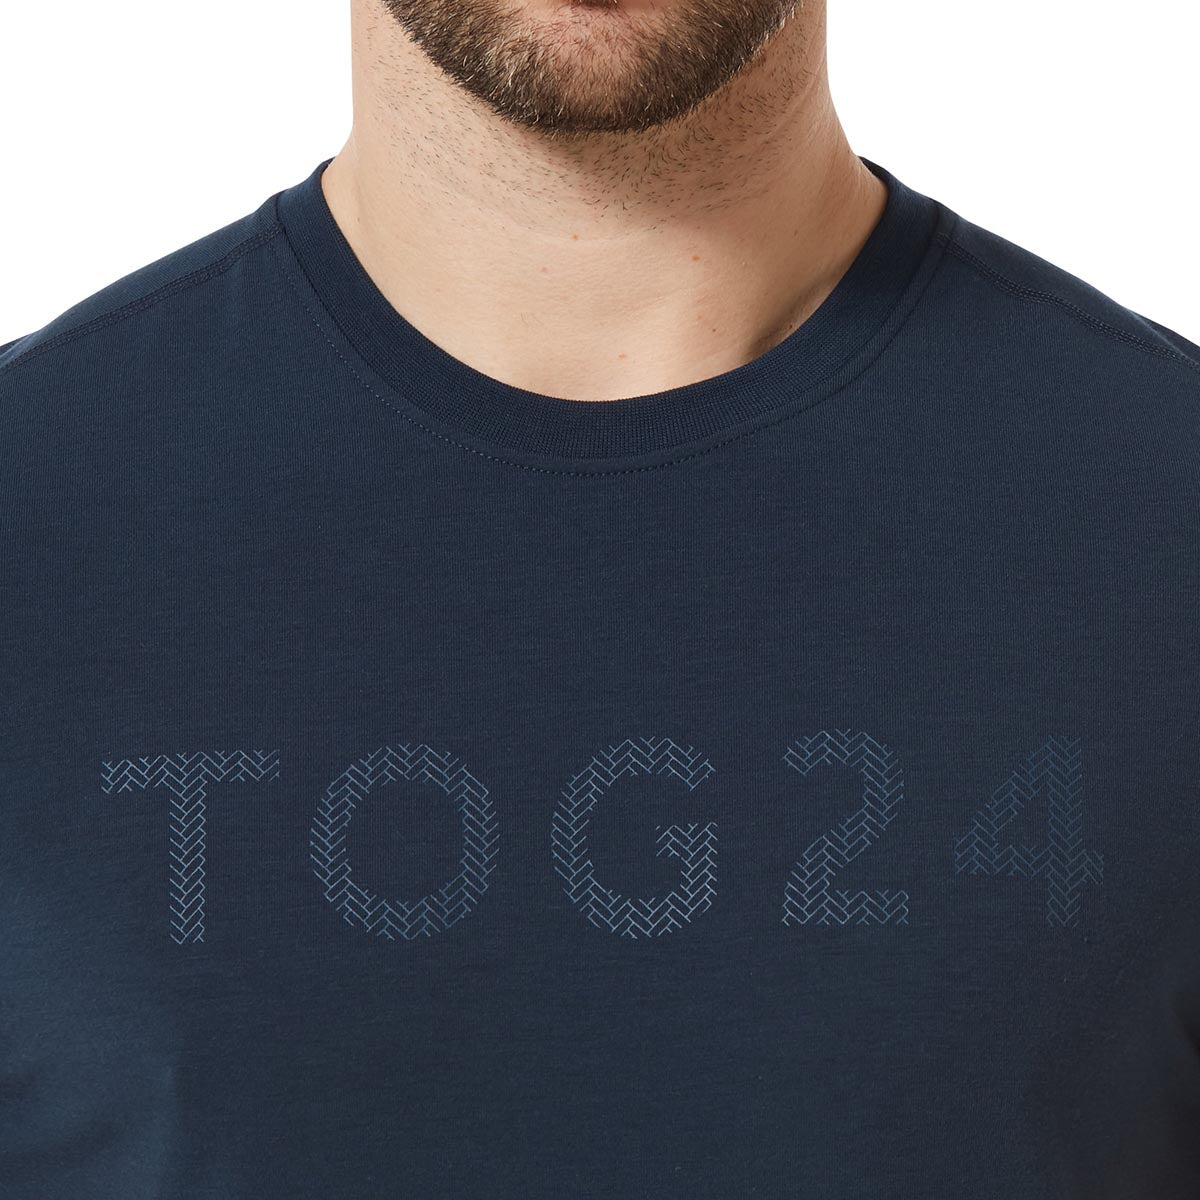 Hutton Mens Performance Graphic T-Shirt - Naval Blue image 4